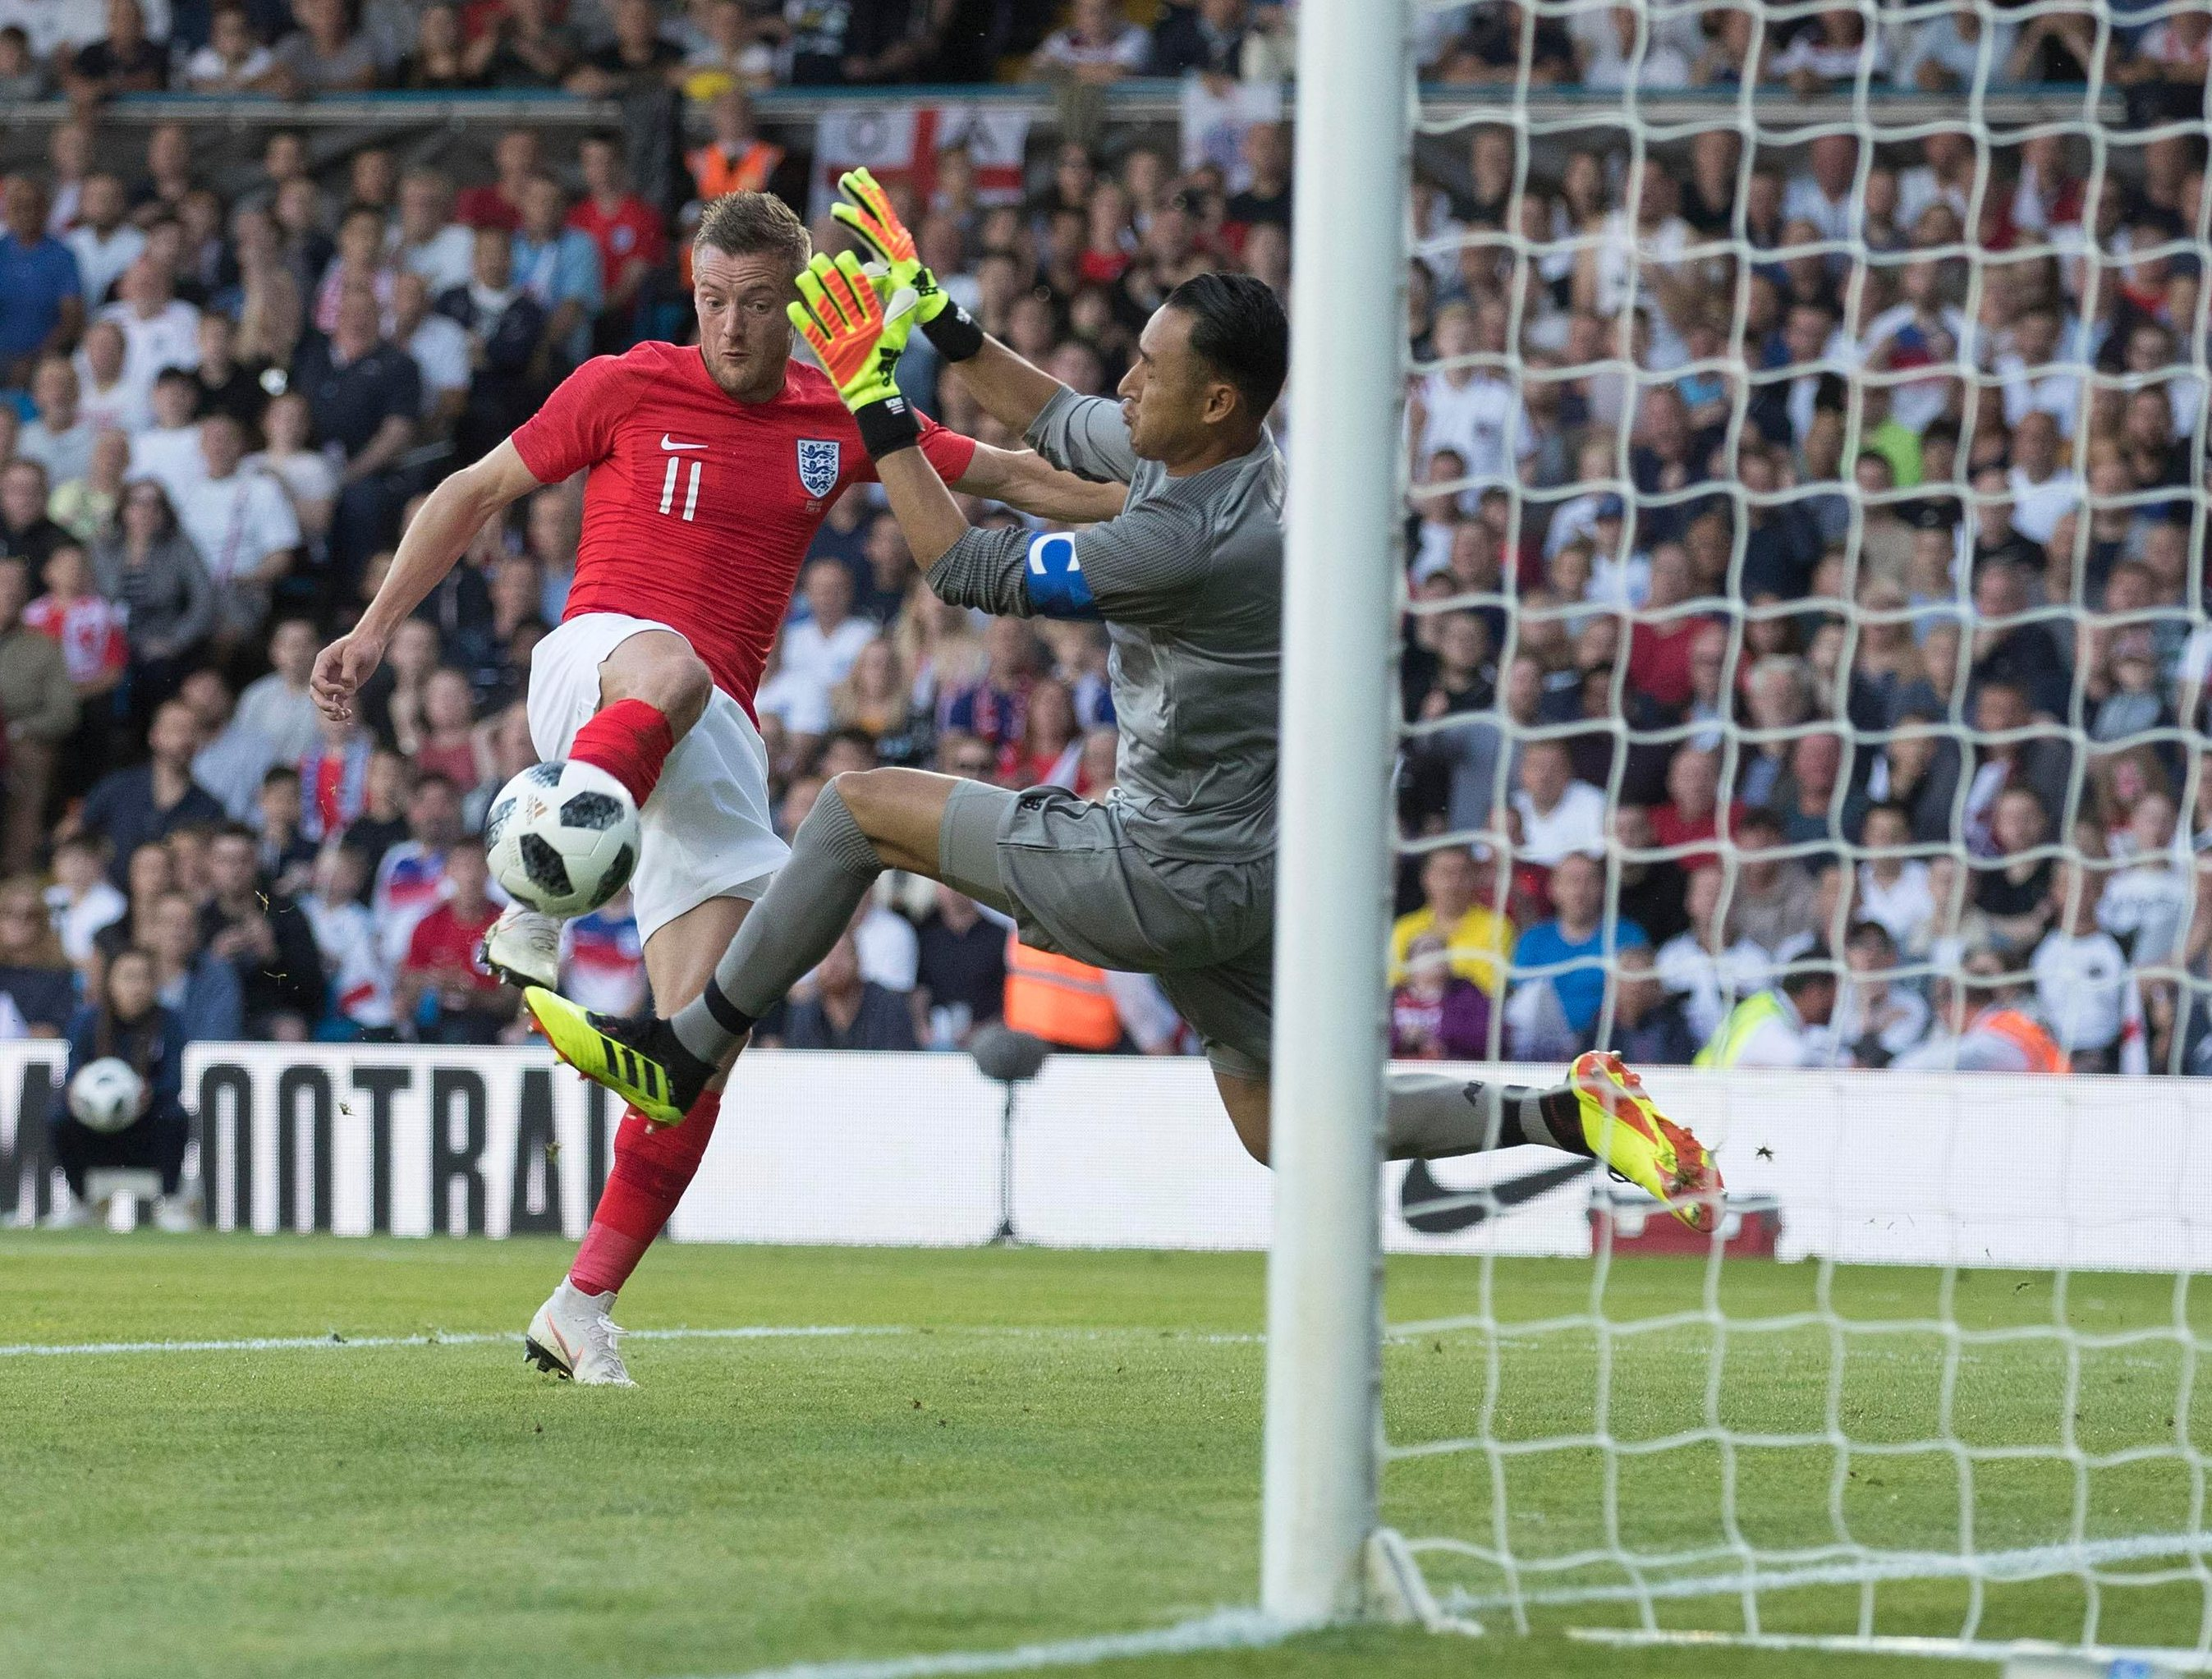 Keylor Navas makes a brave stop to deny Jamie Vardy from doubling the lead for England